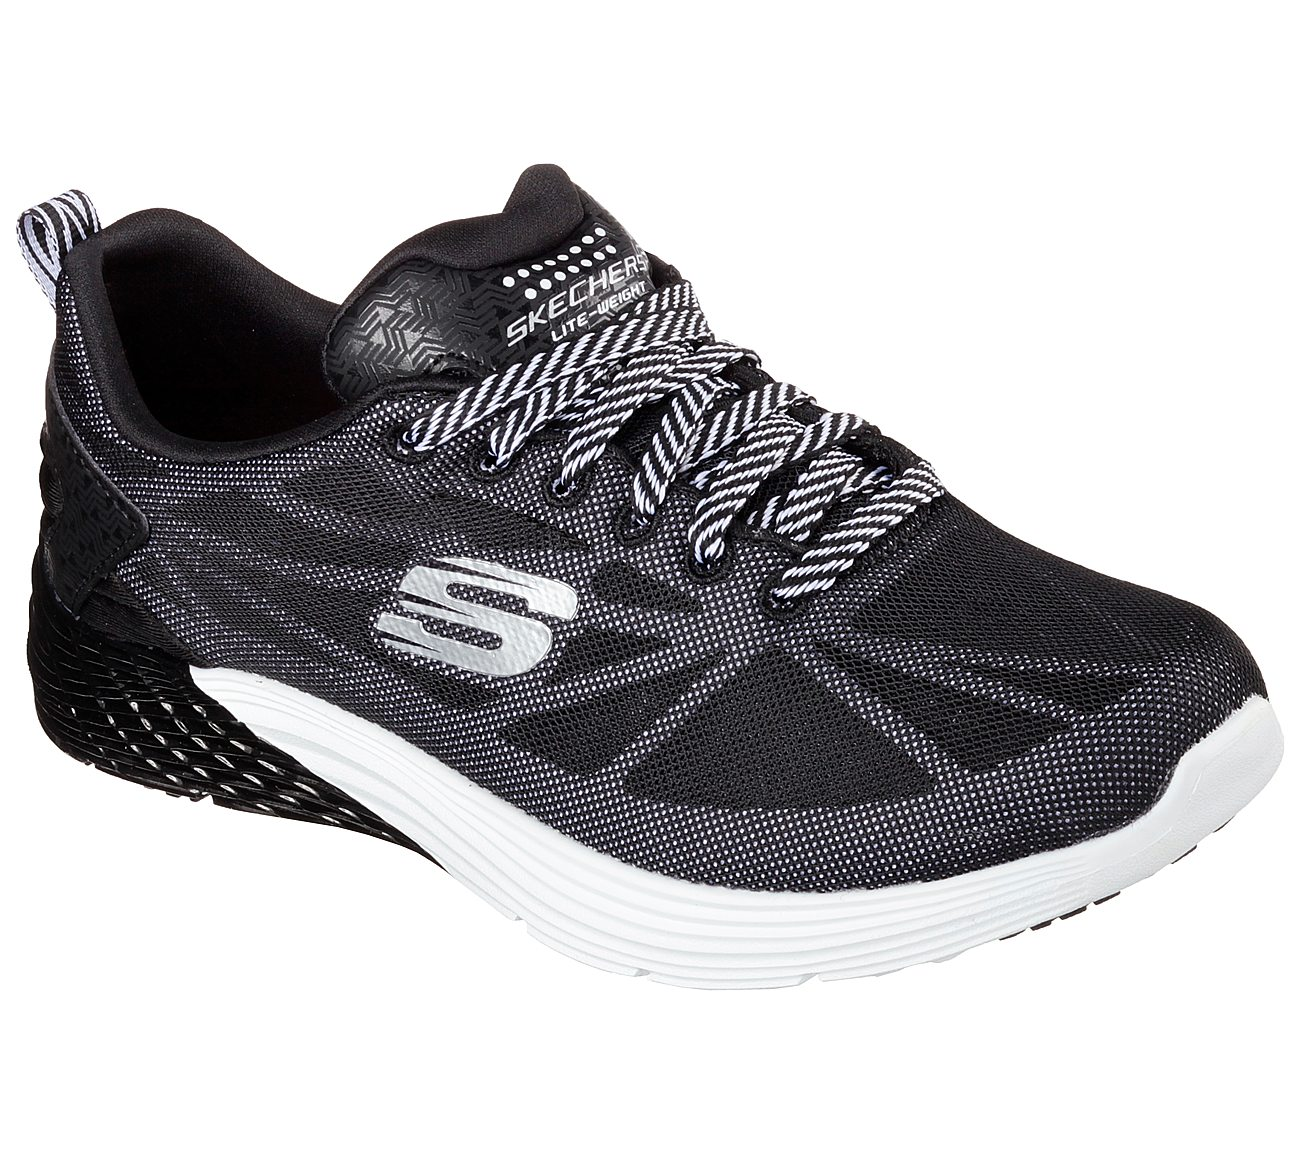 f237c42ded26 Buy SKECHERS Relaxed Fit  Valeris - Front Page Sport Shoes only  85.00